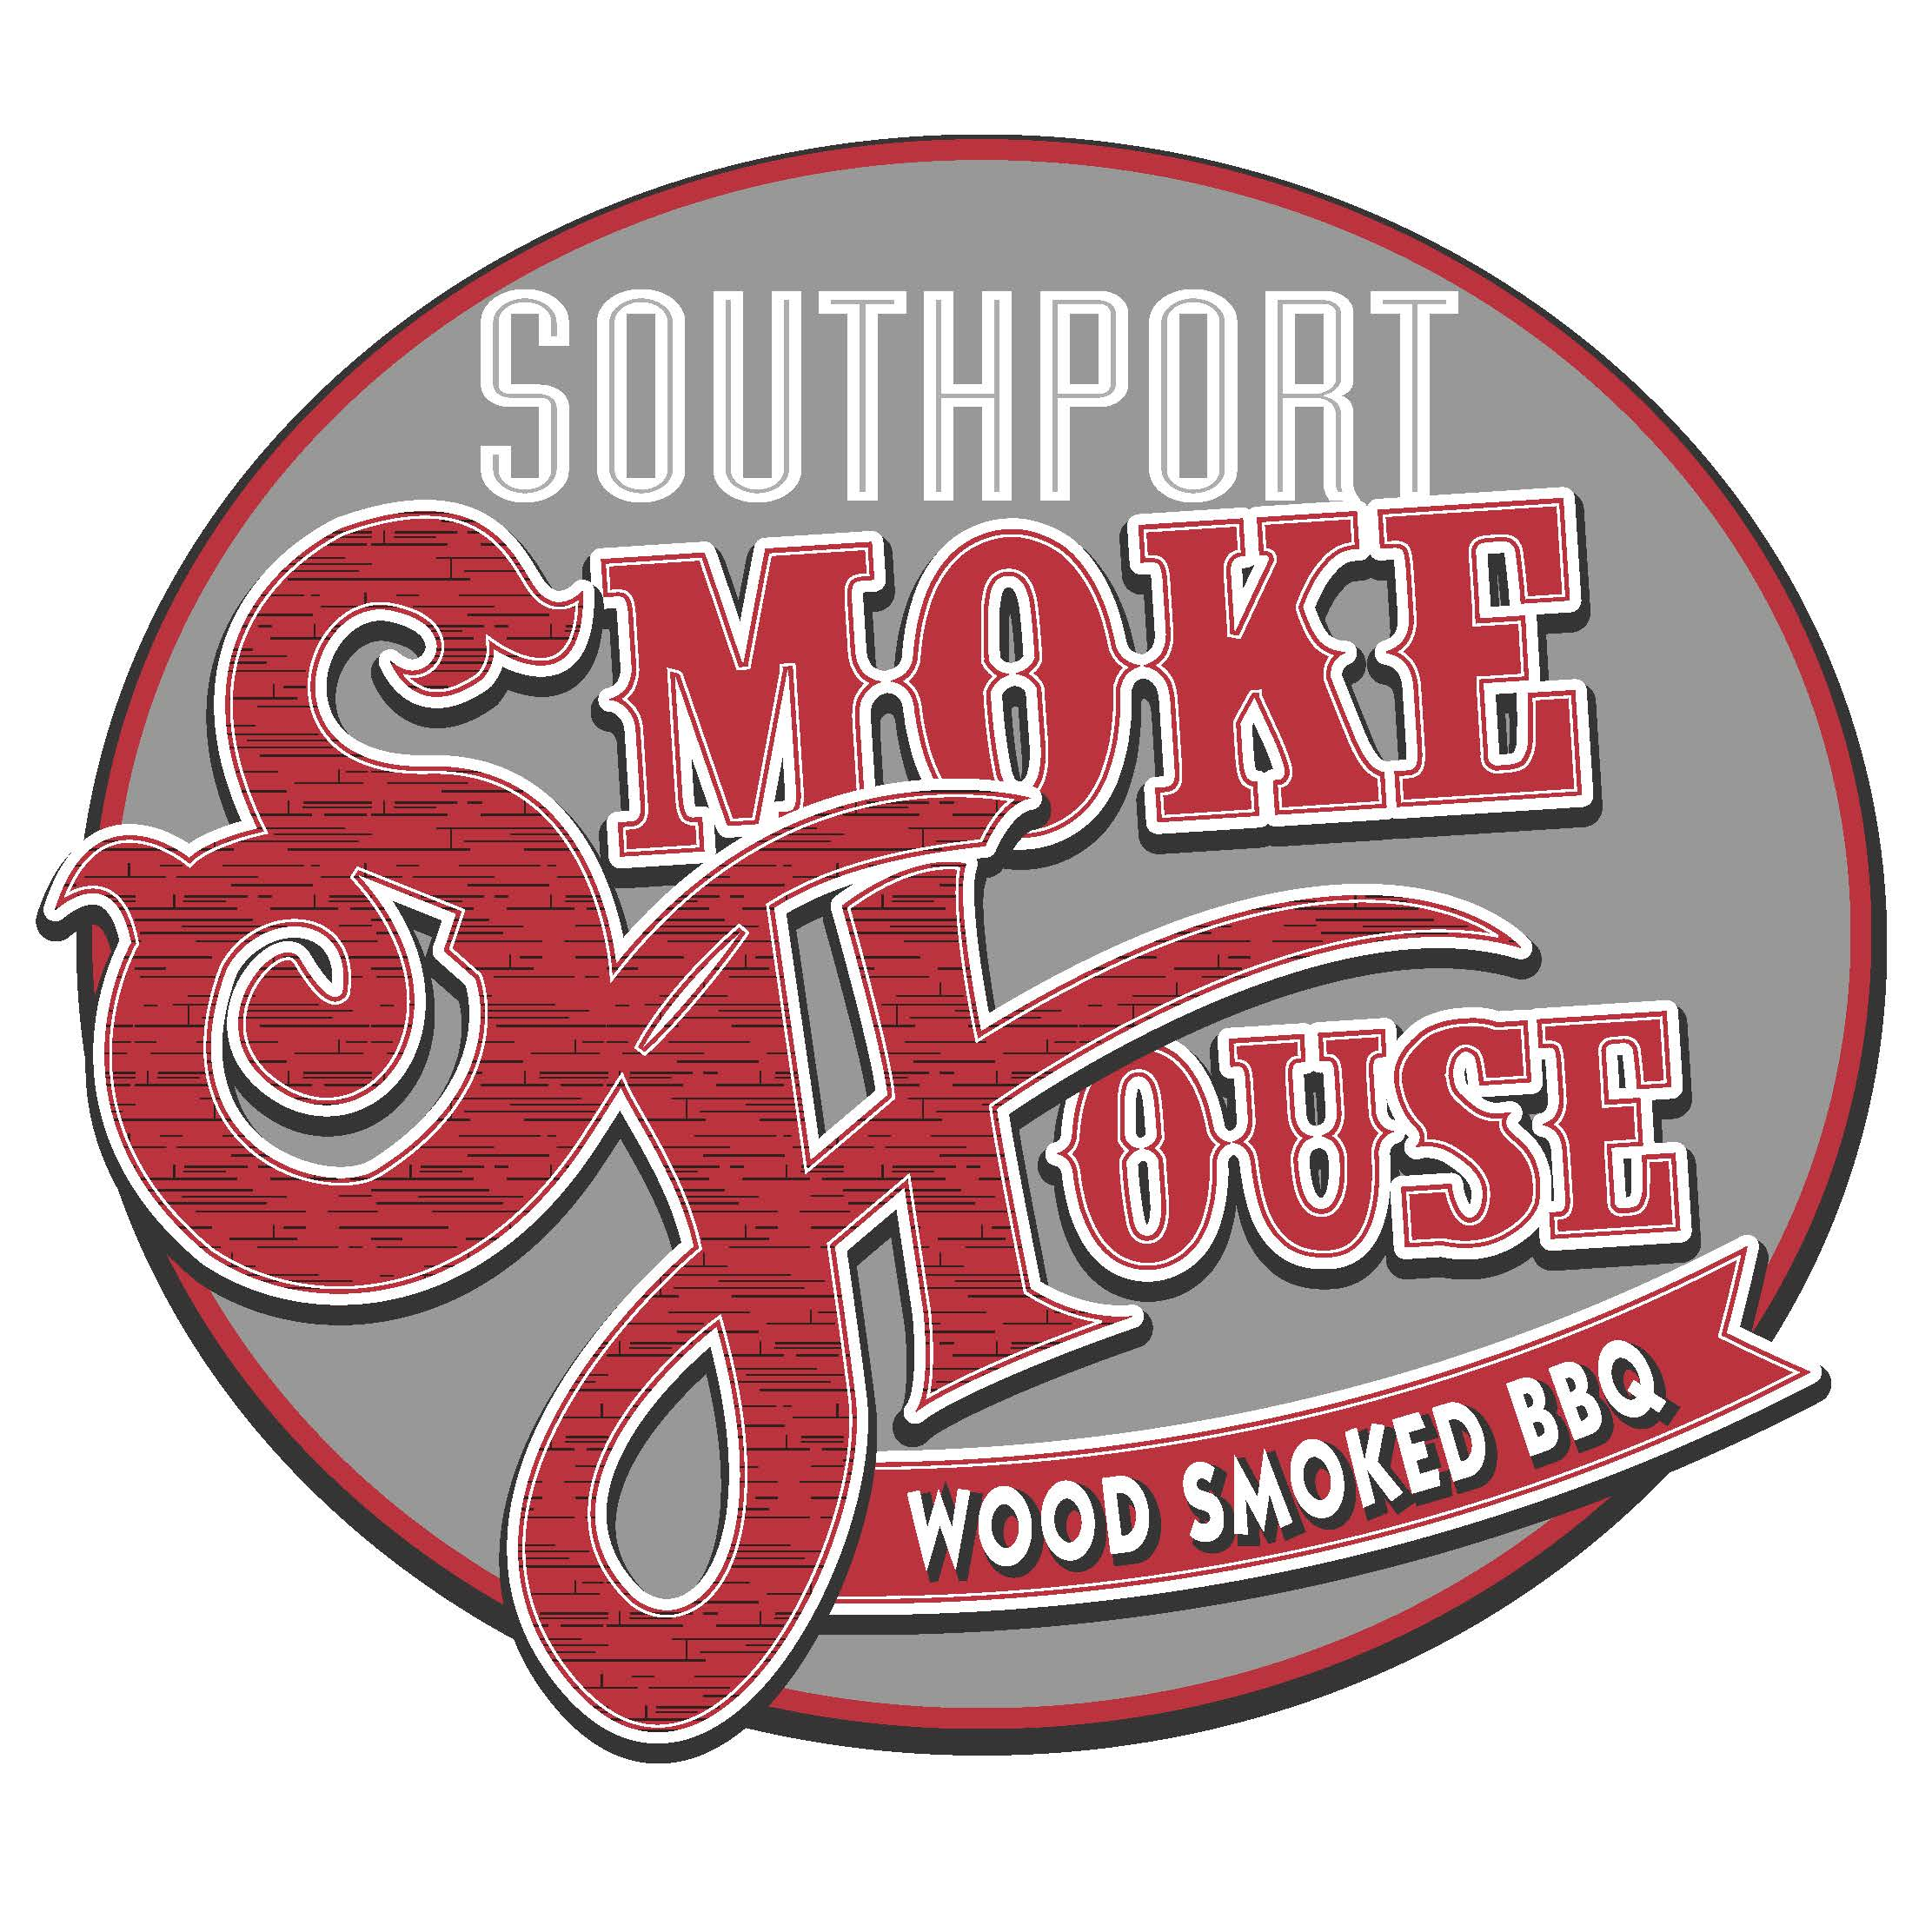 Southport Smoke House